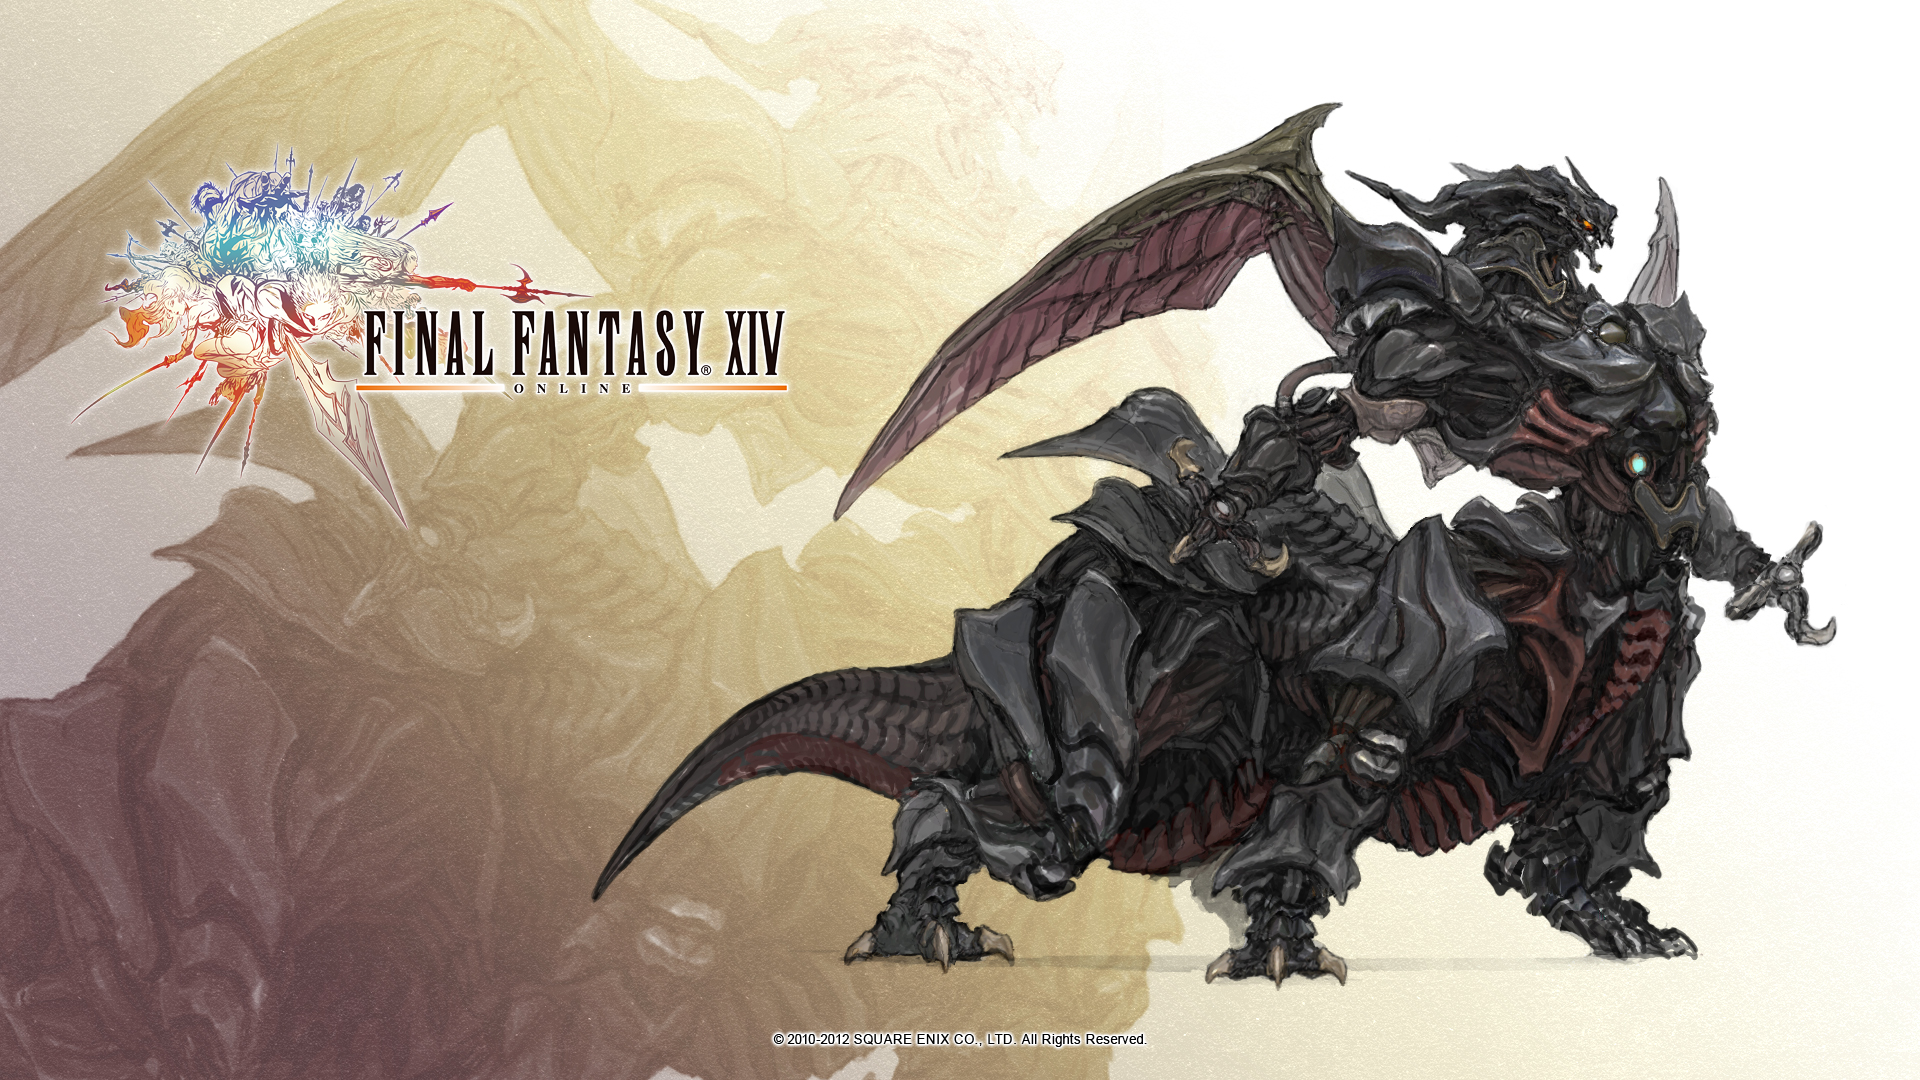 Final Fantasy XIV Wallpapers - WallpaperSafari